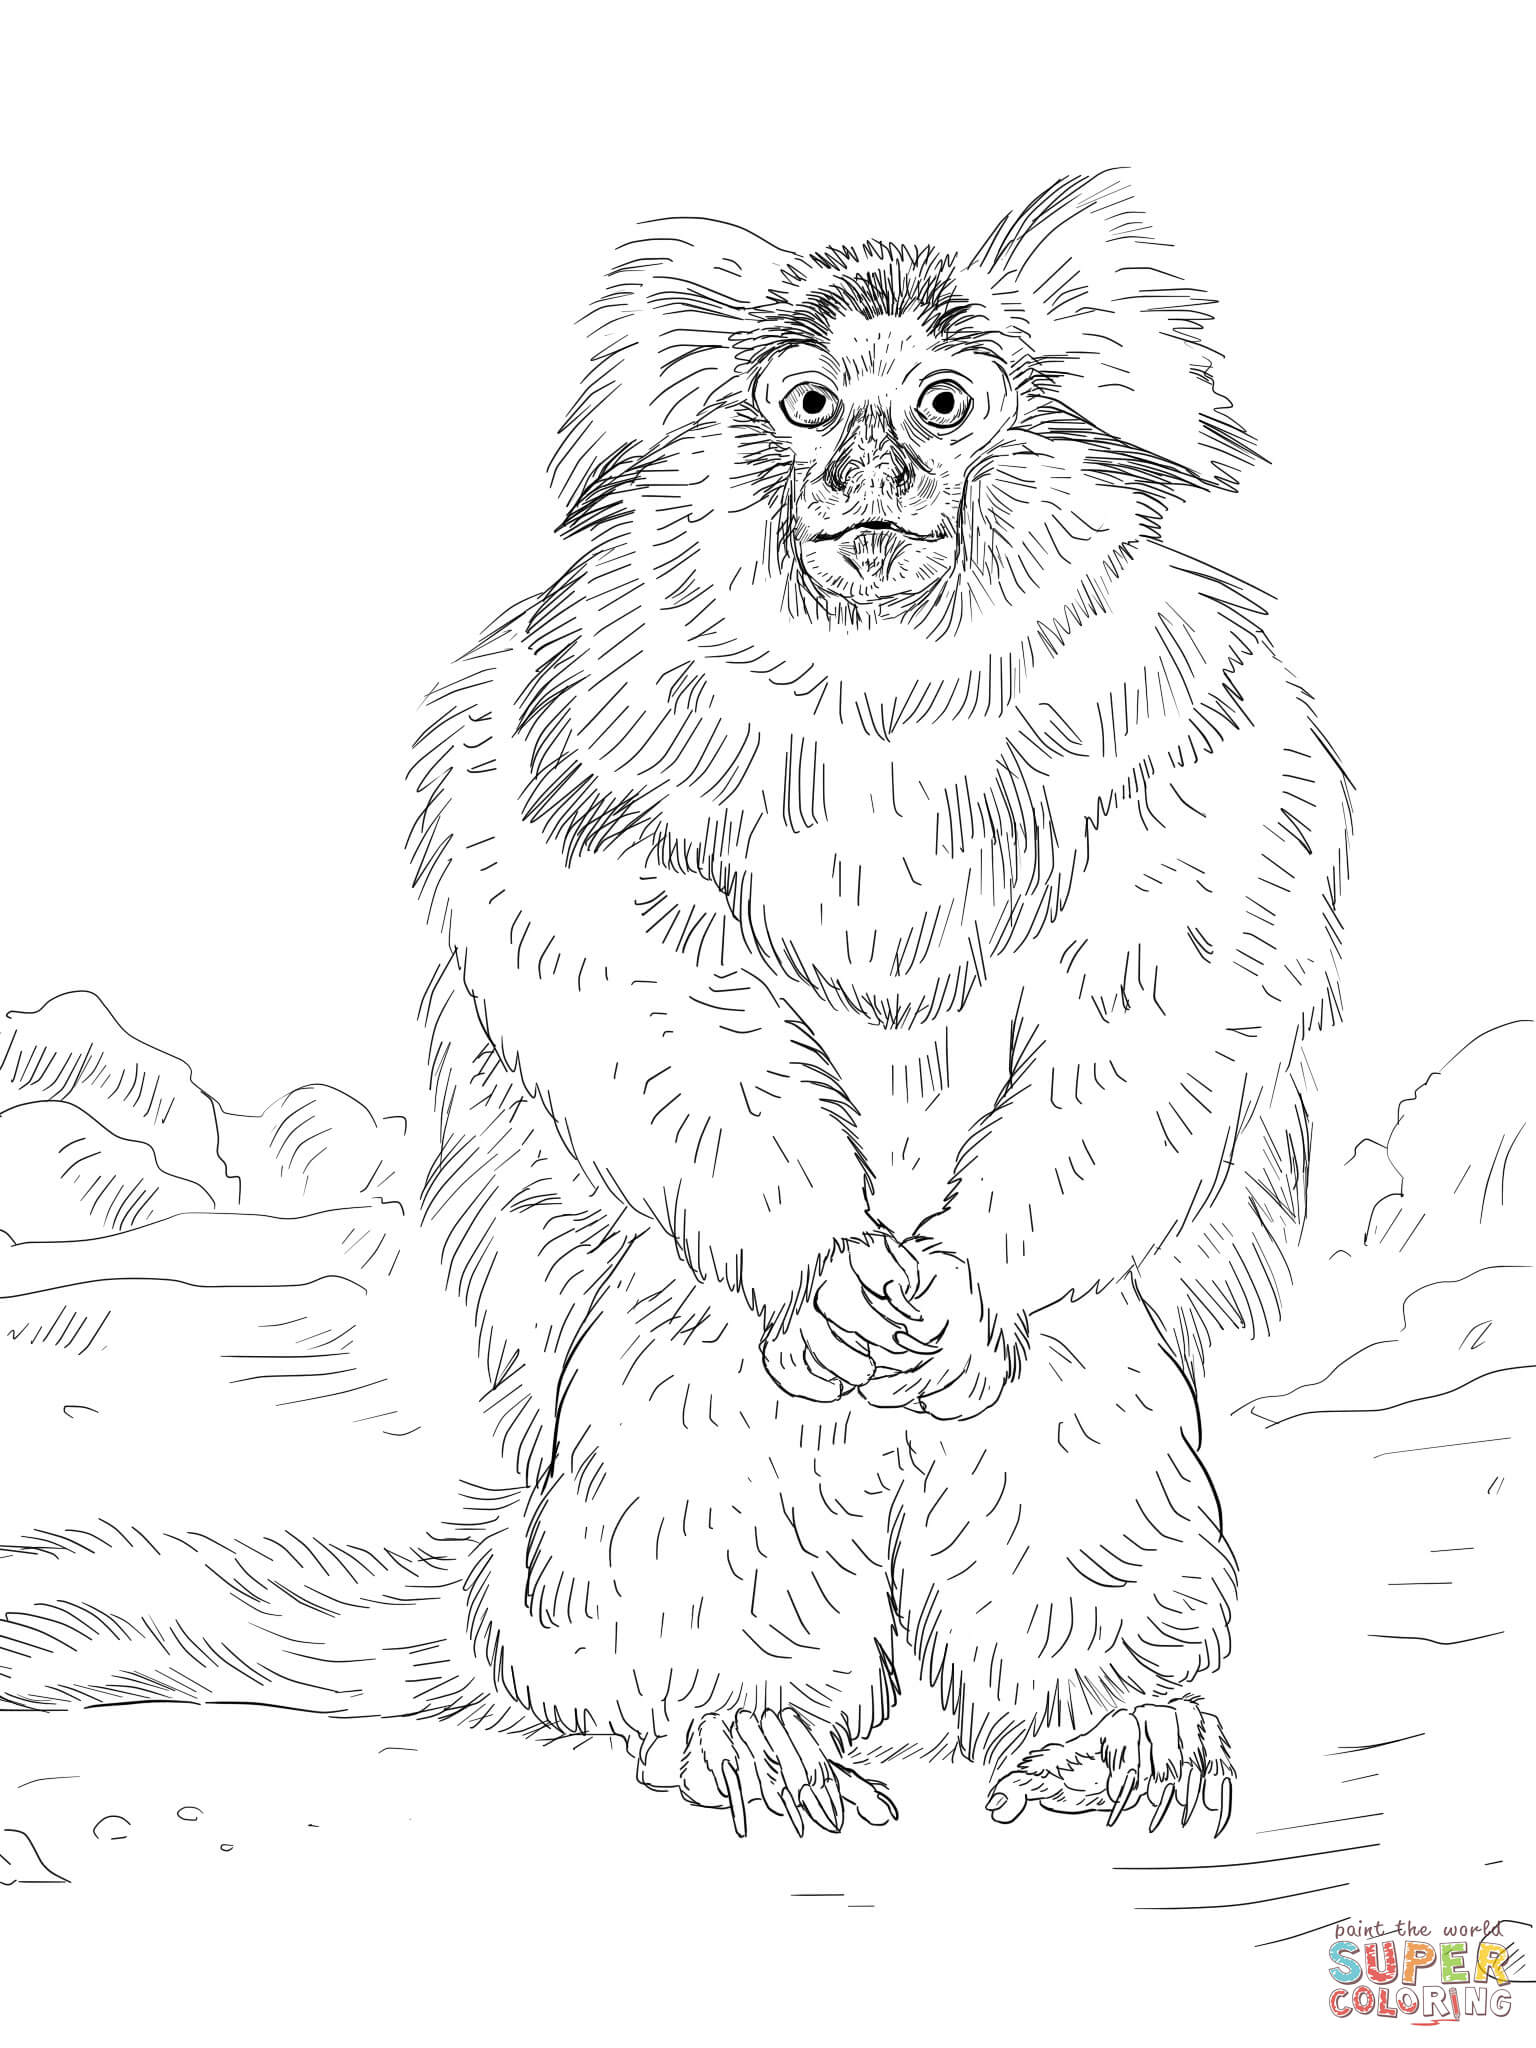 pygmy marmoset coloring pages - photo#9